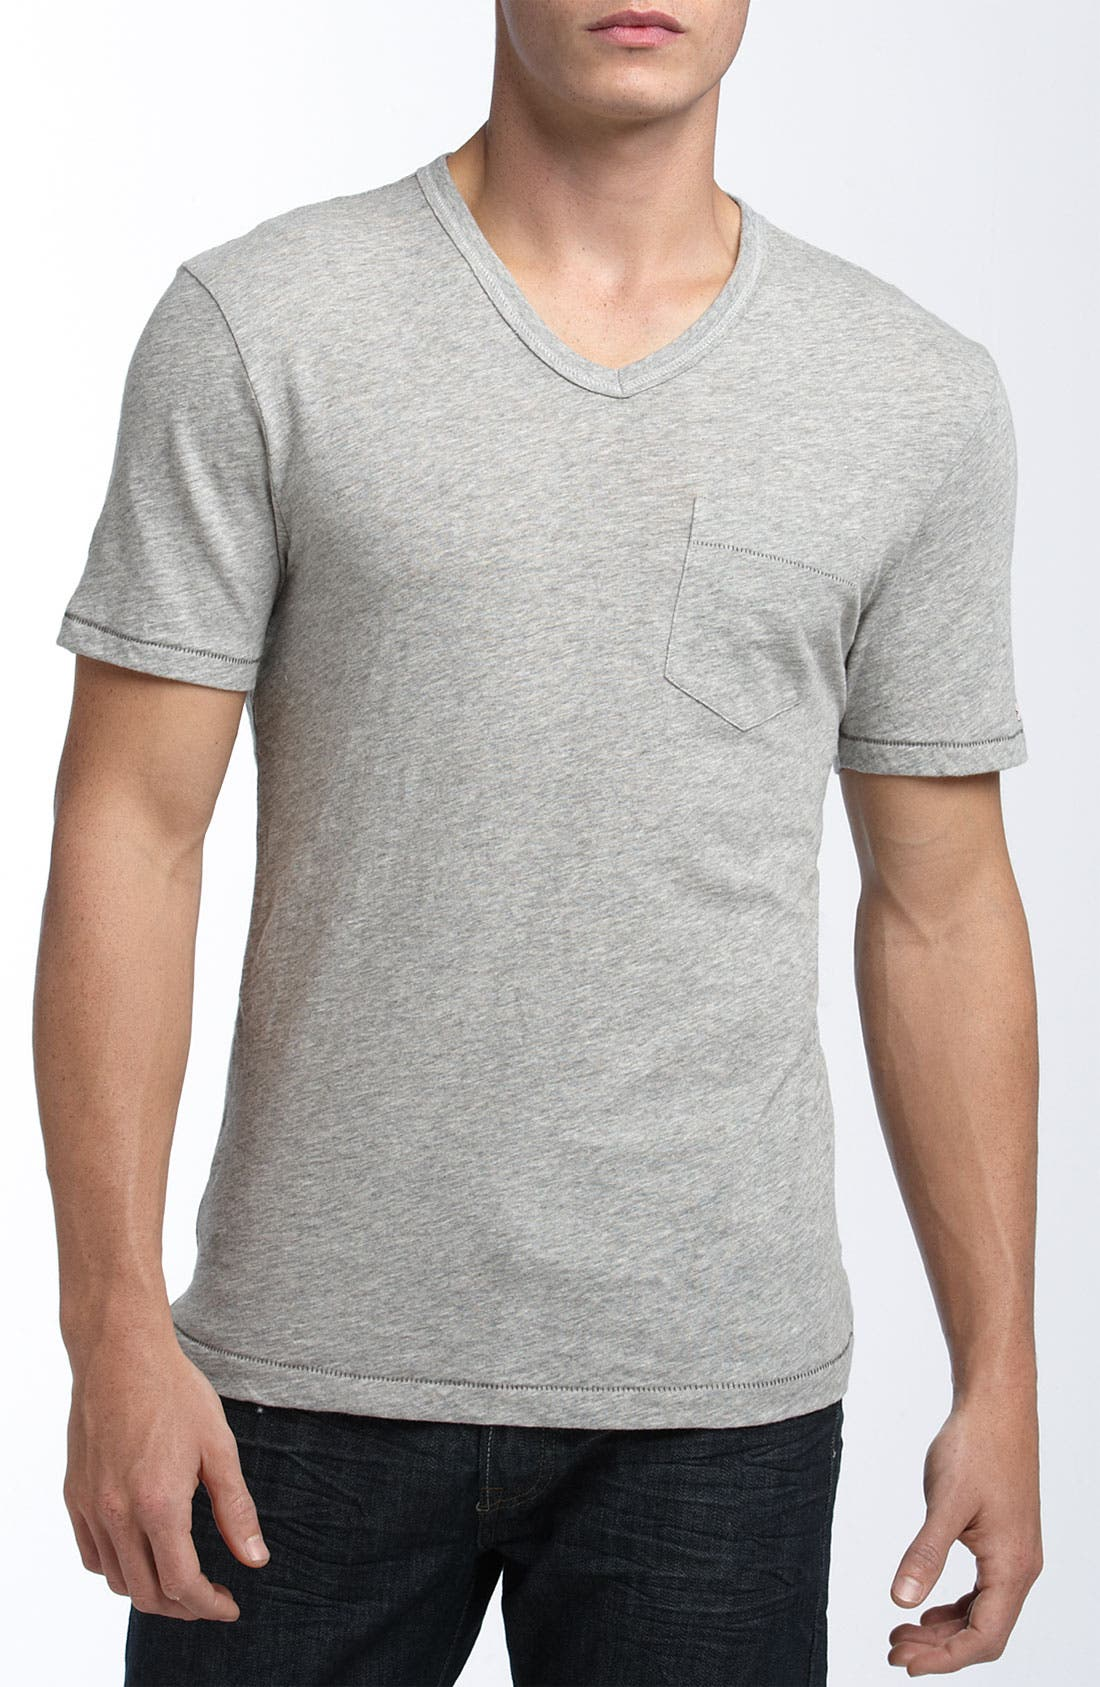 Alternate Image 1 Selected - Original Penguin Trim Fit Heathered V-Neck T-Shirt